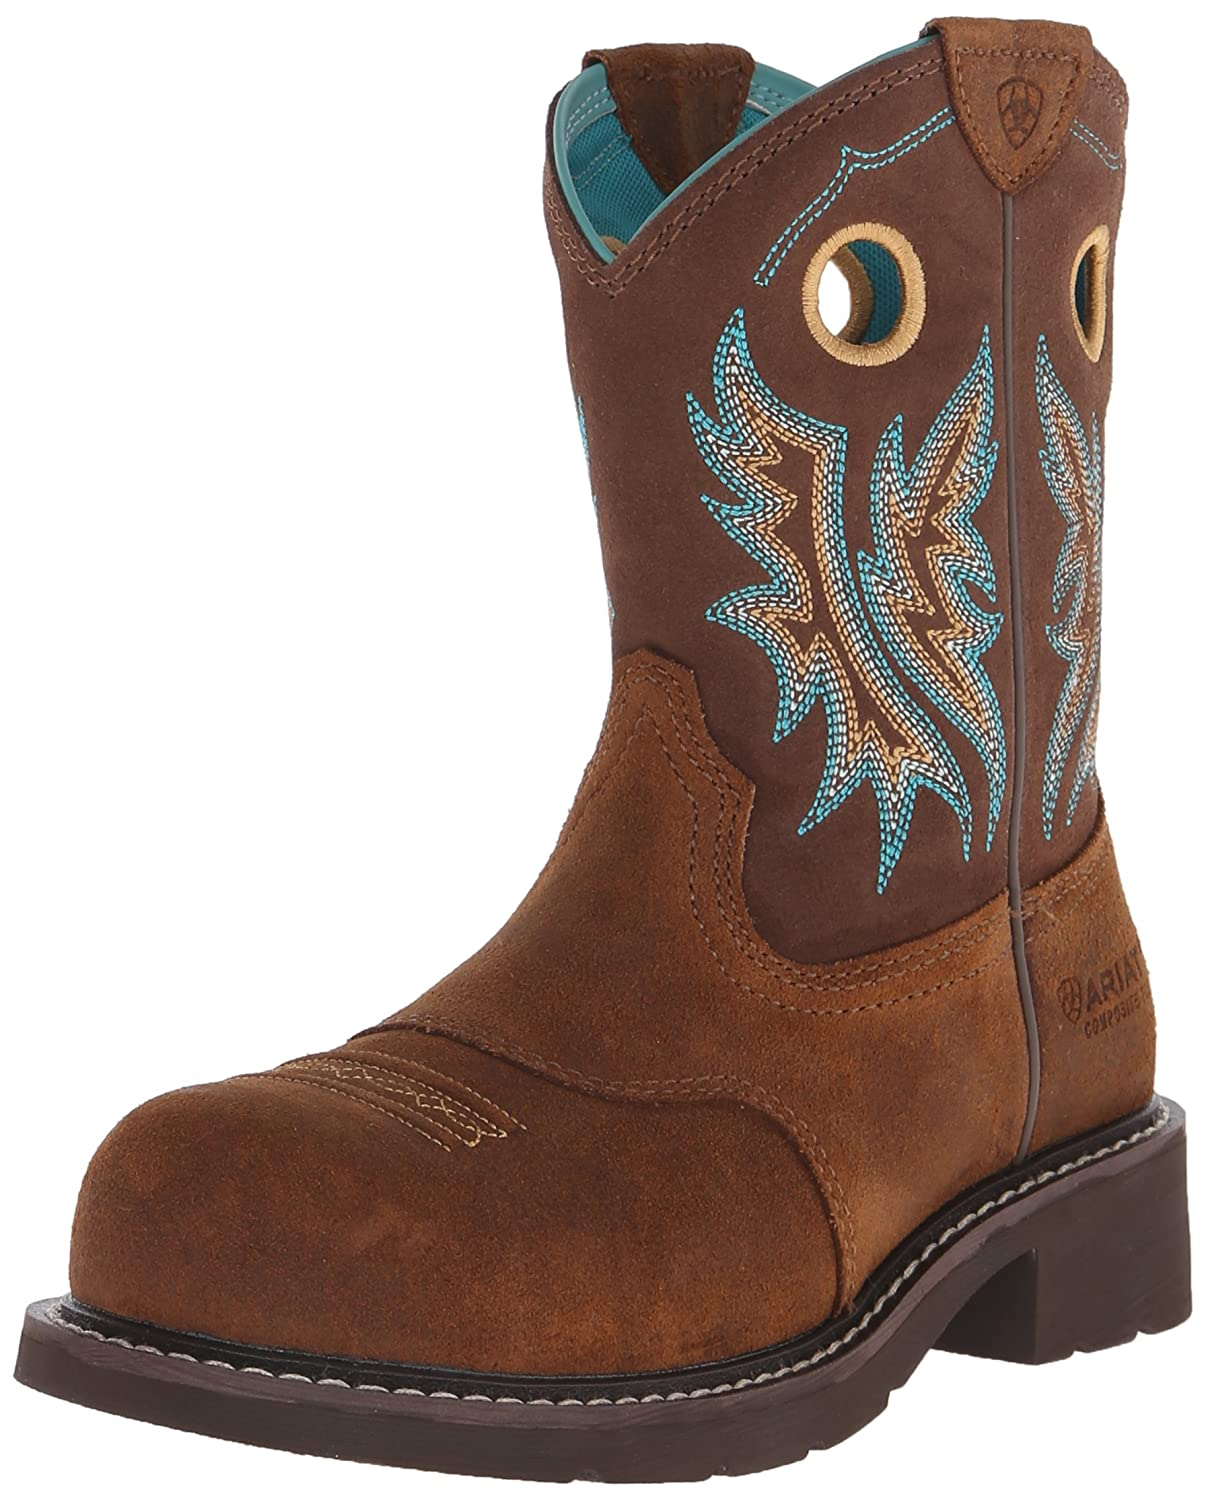 93b3b21fcc4 Ariat Women's Fatbaby Cowgirl Composite Toe Work Boot